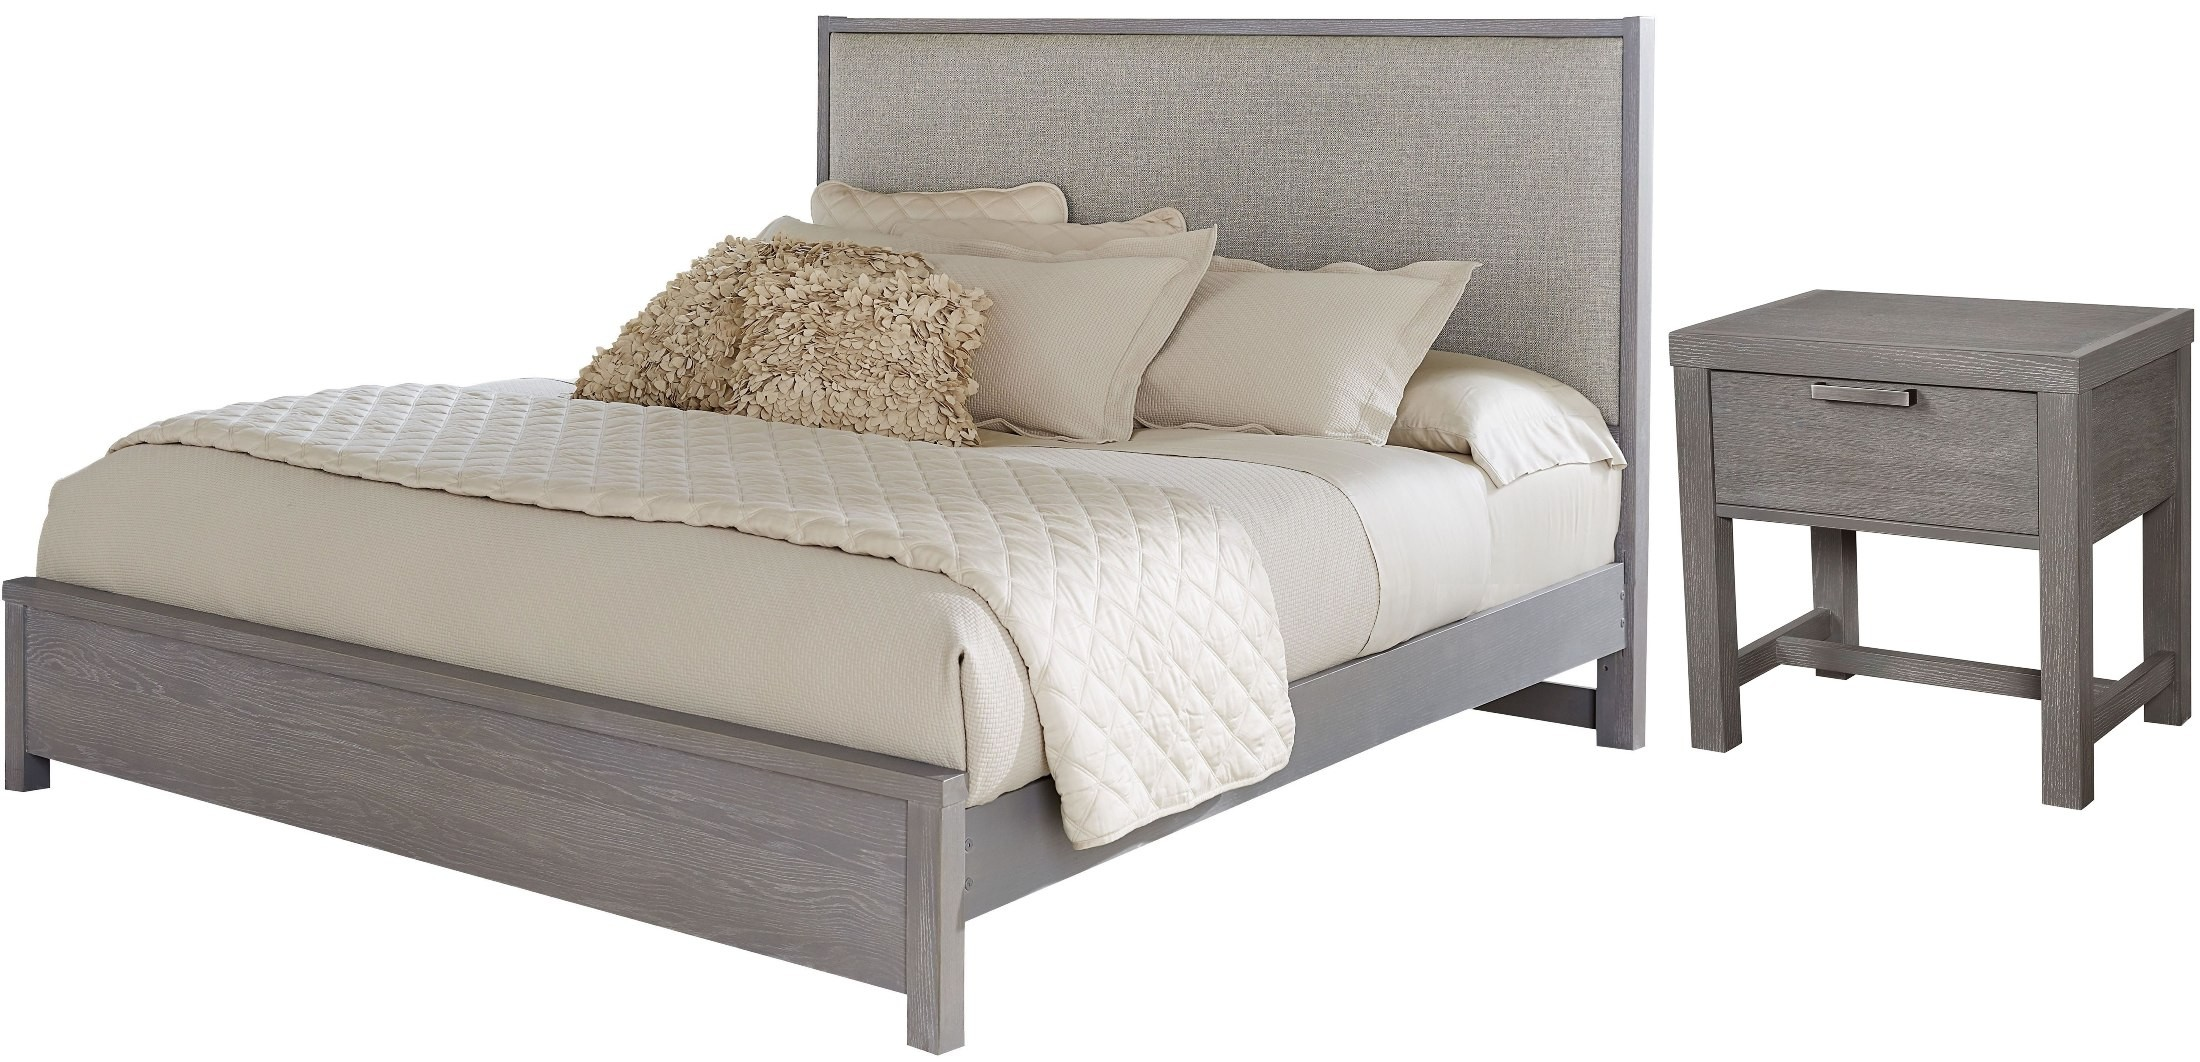 American Modern Grey Upholstered Panel Bedroom Set From